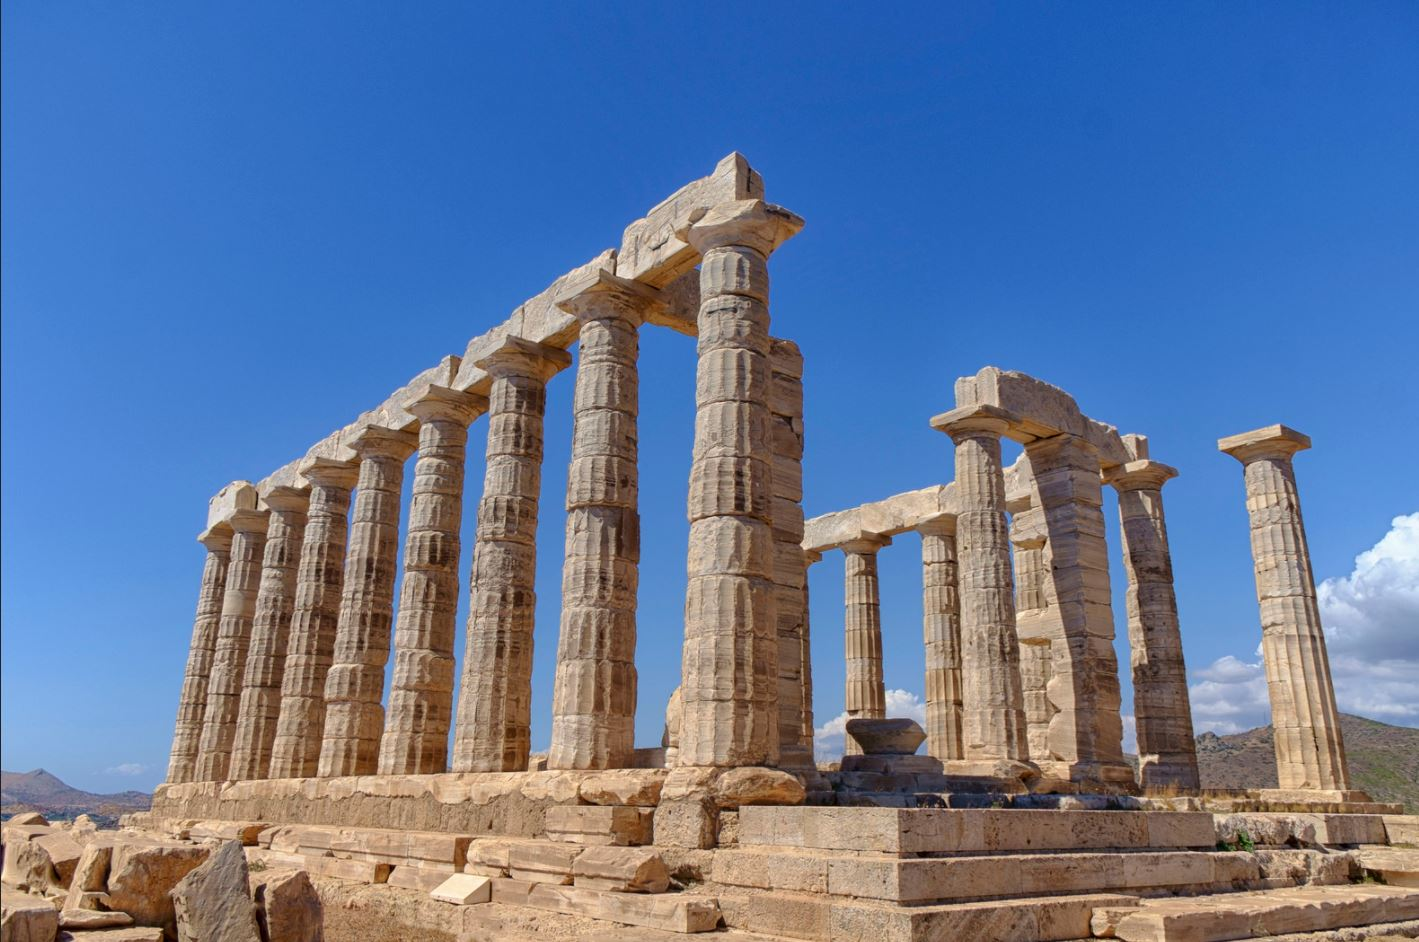 How to get to Sounio from Athens